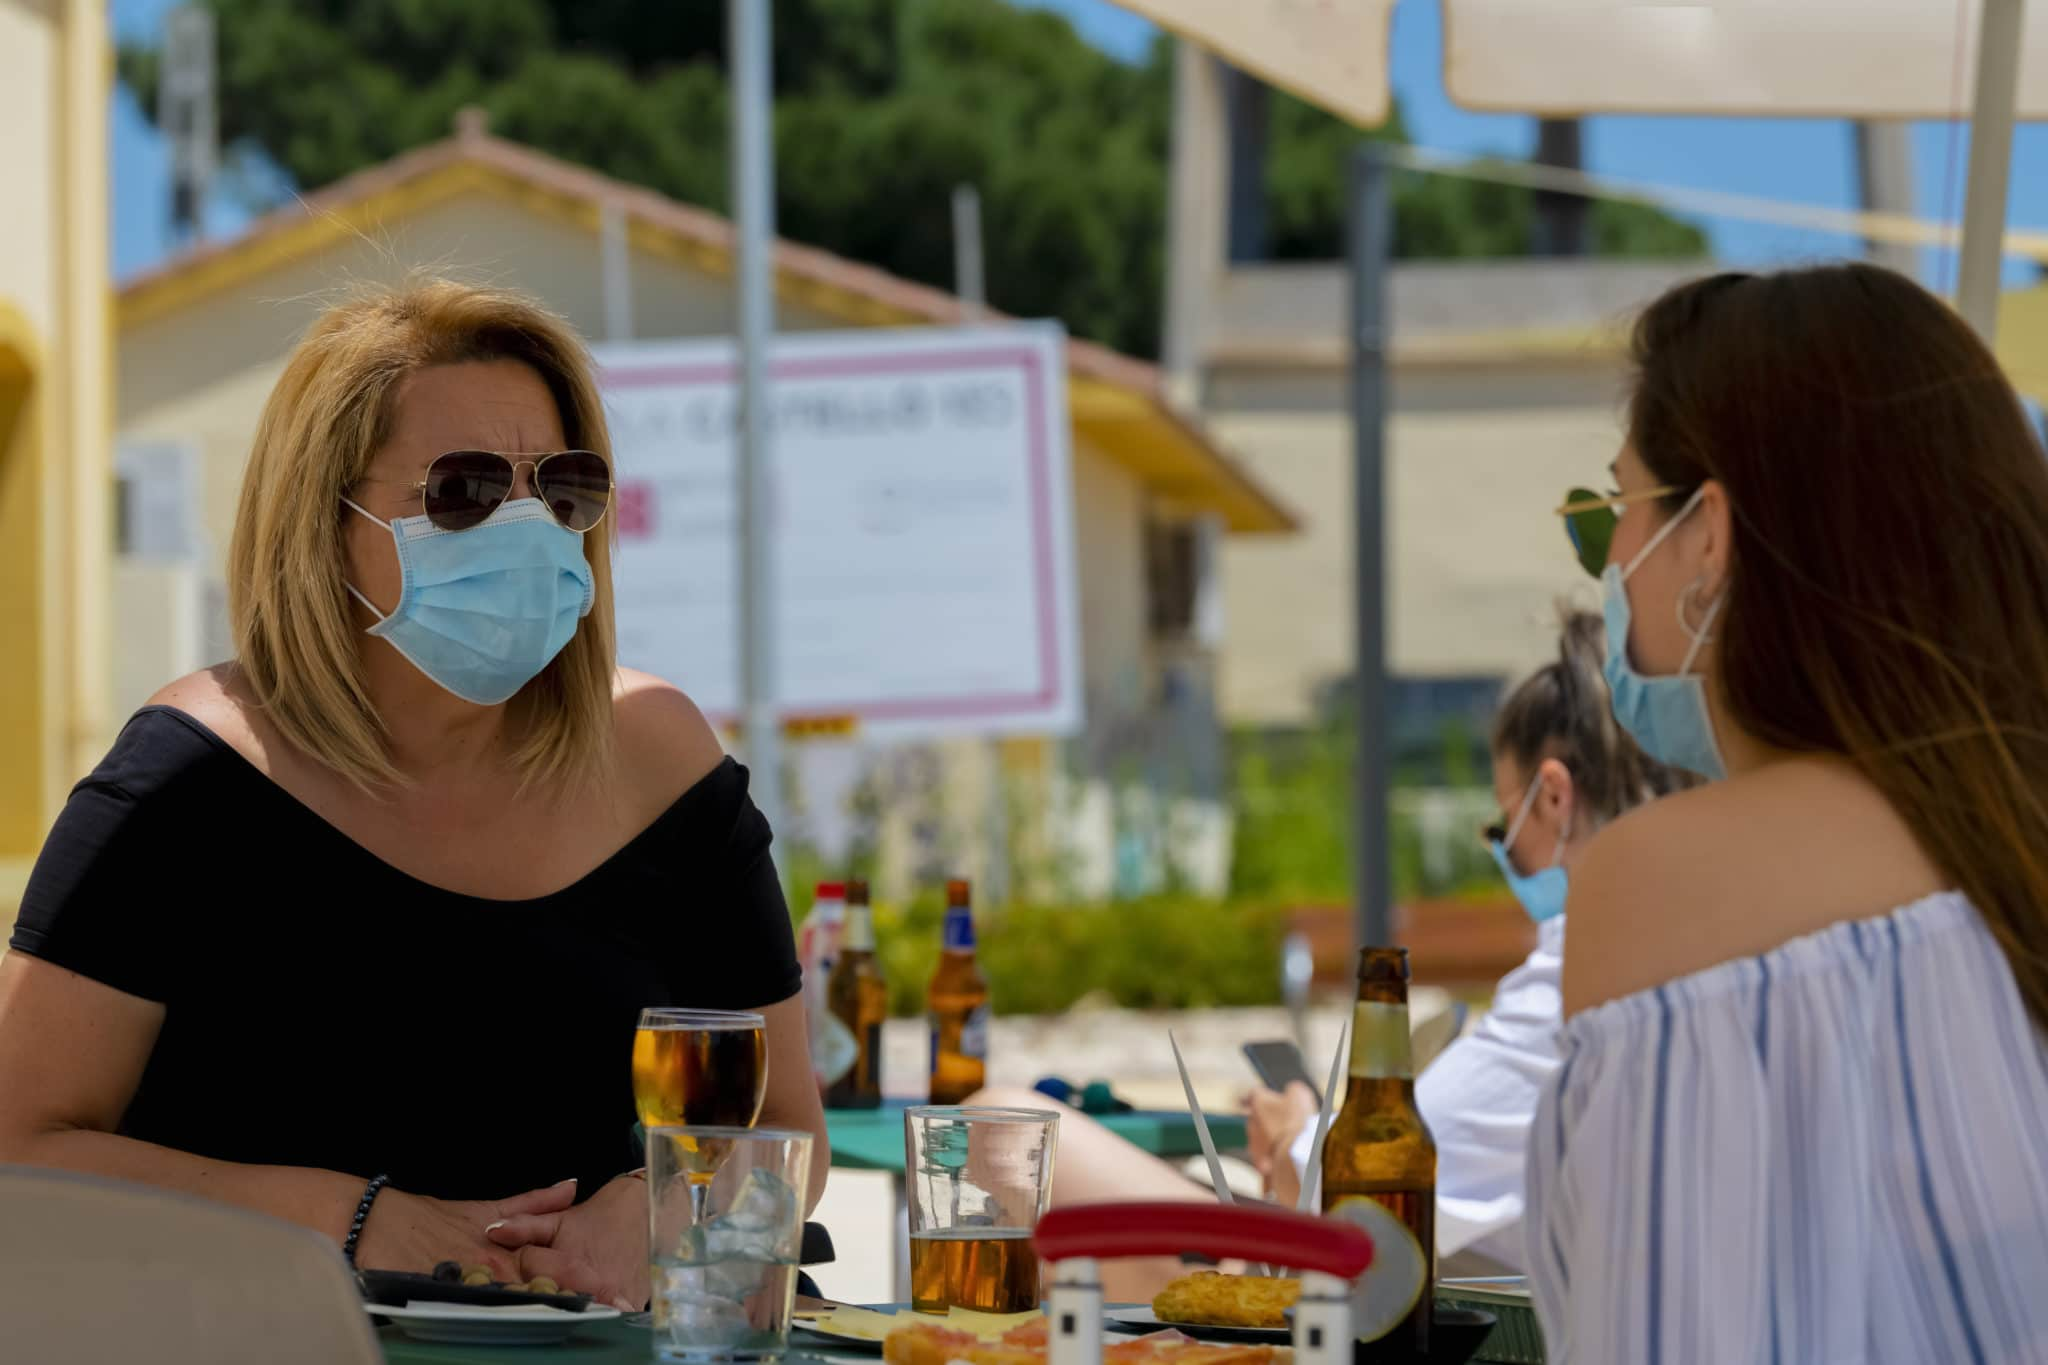 Women using surgical masks and sunglasses sitting at an outdoor bar terrace with beers and snacks on an out of focus background. New lifestyle concept.